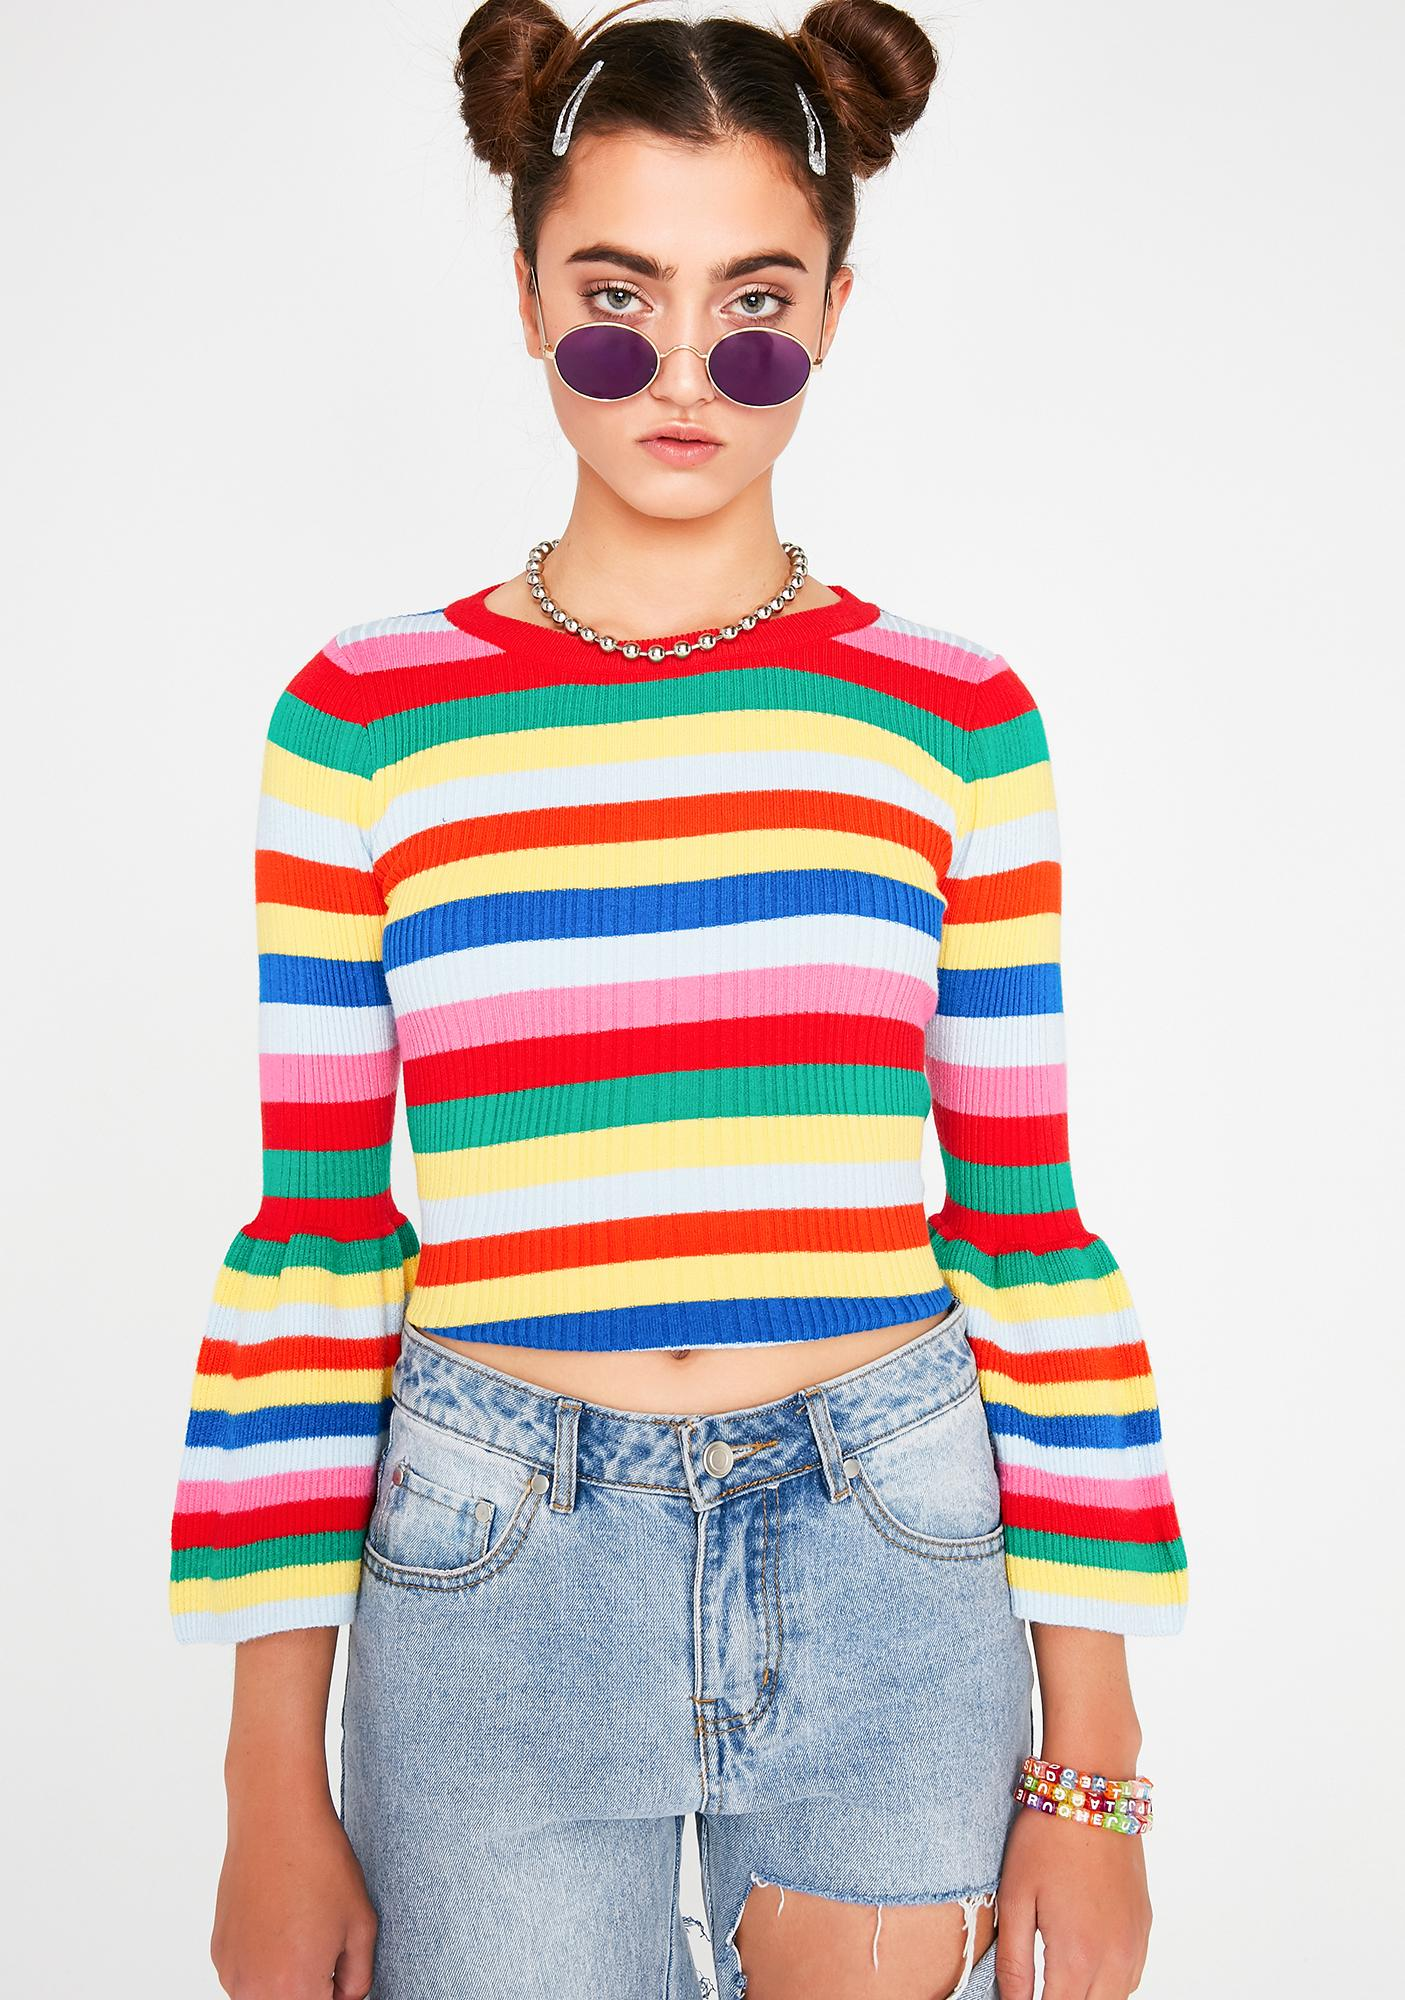 Persuit Of Happiness Rainbow Top